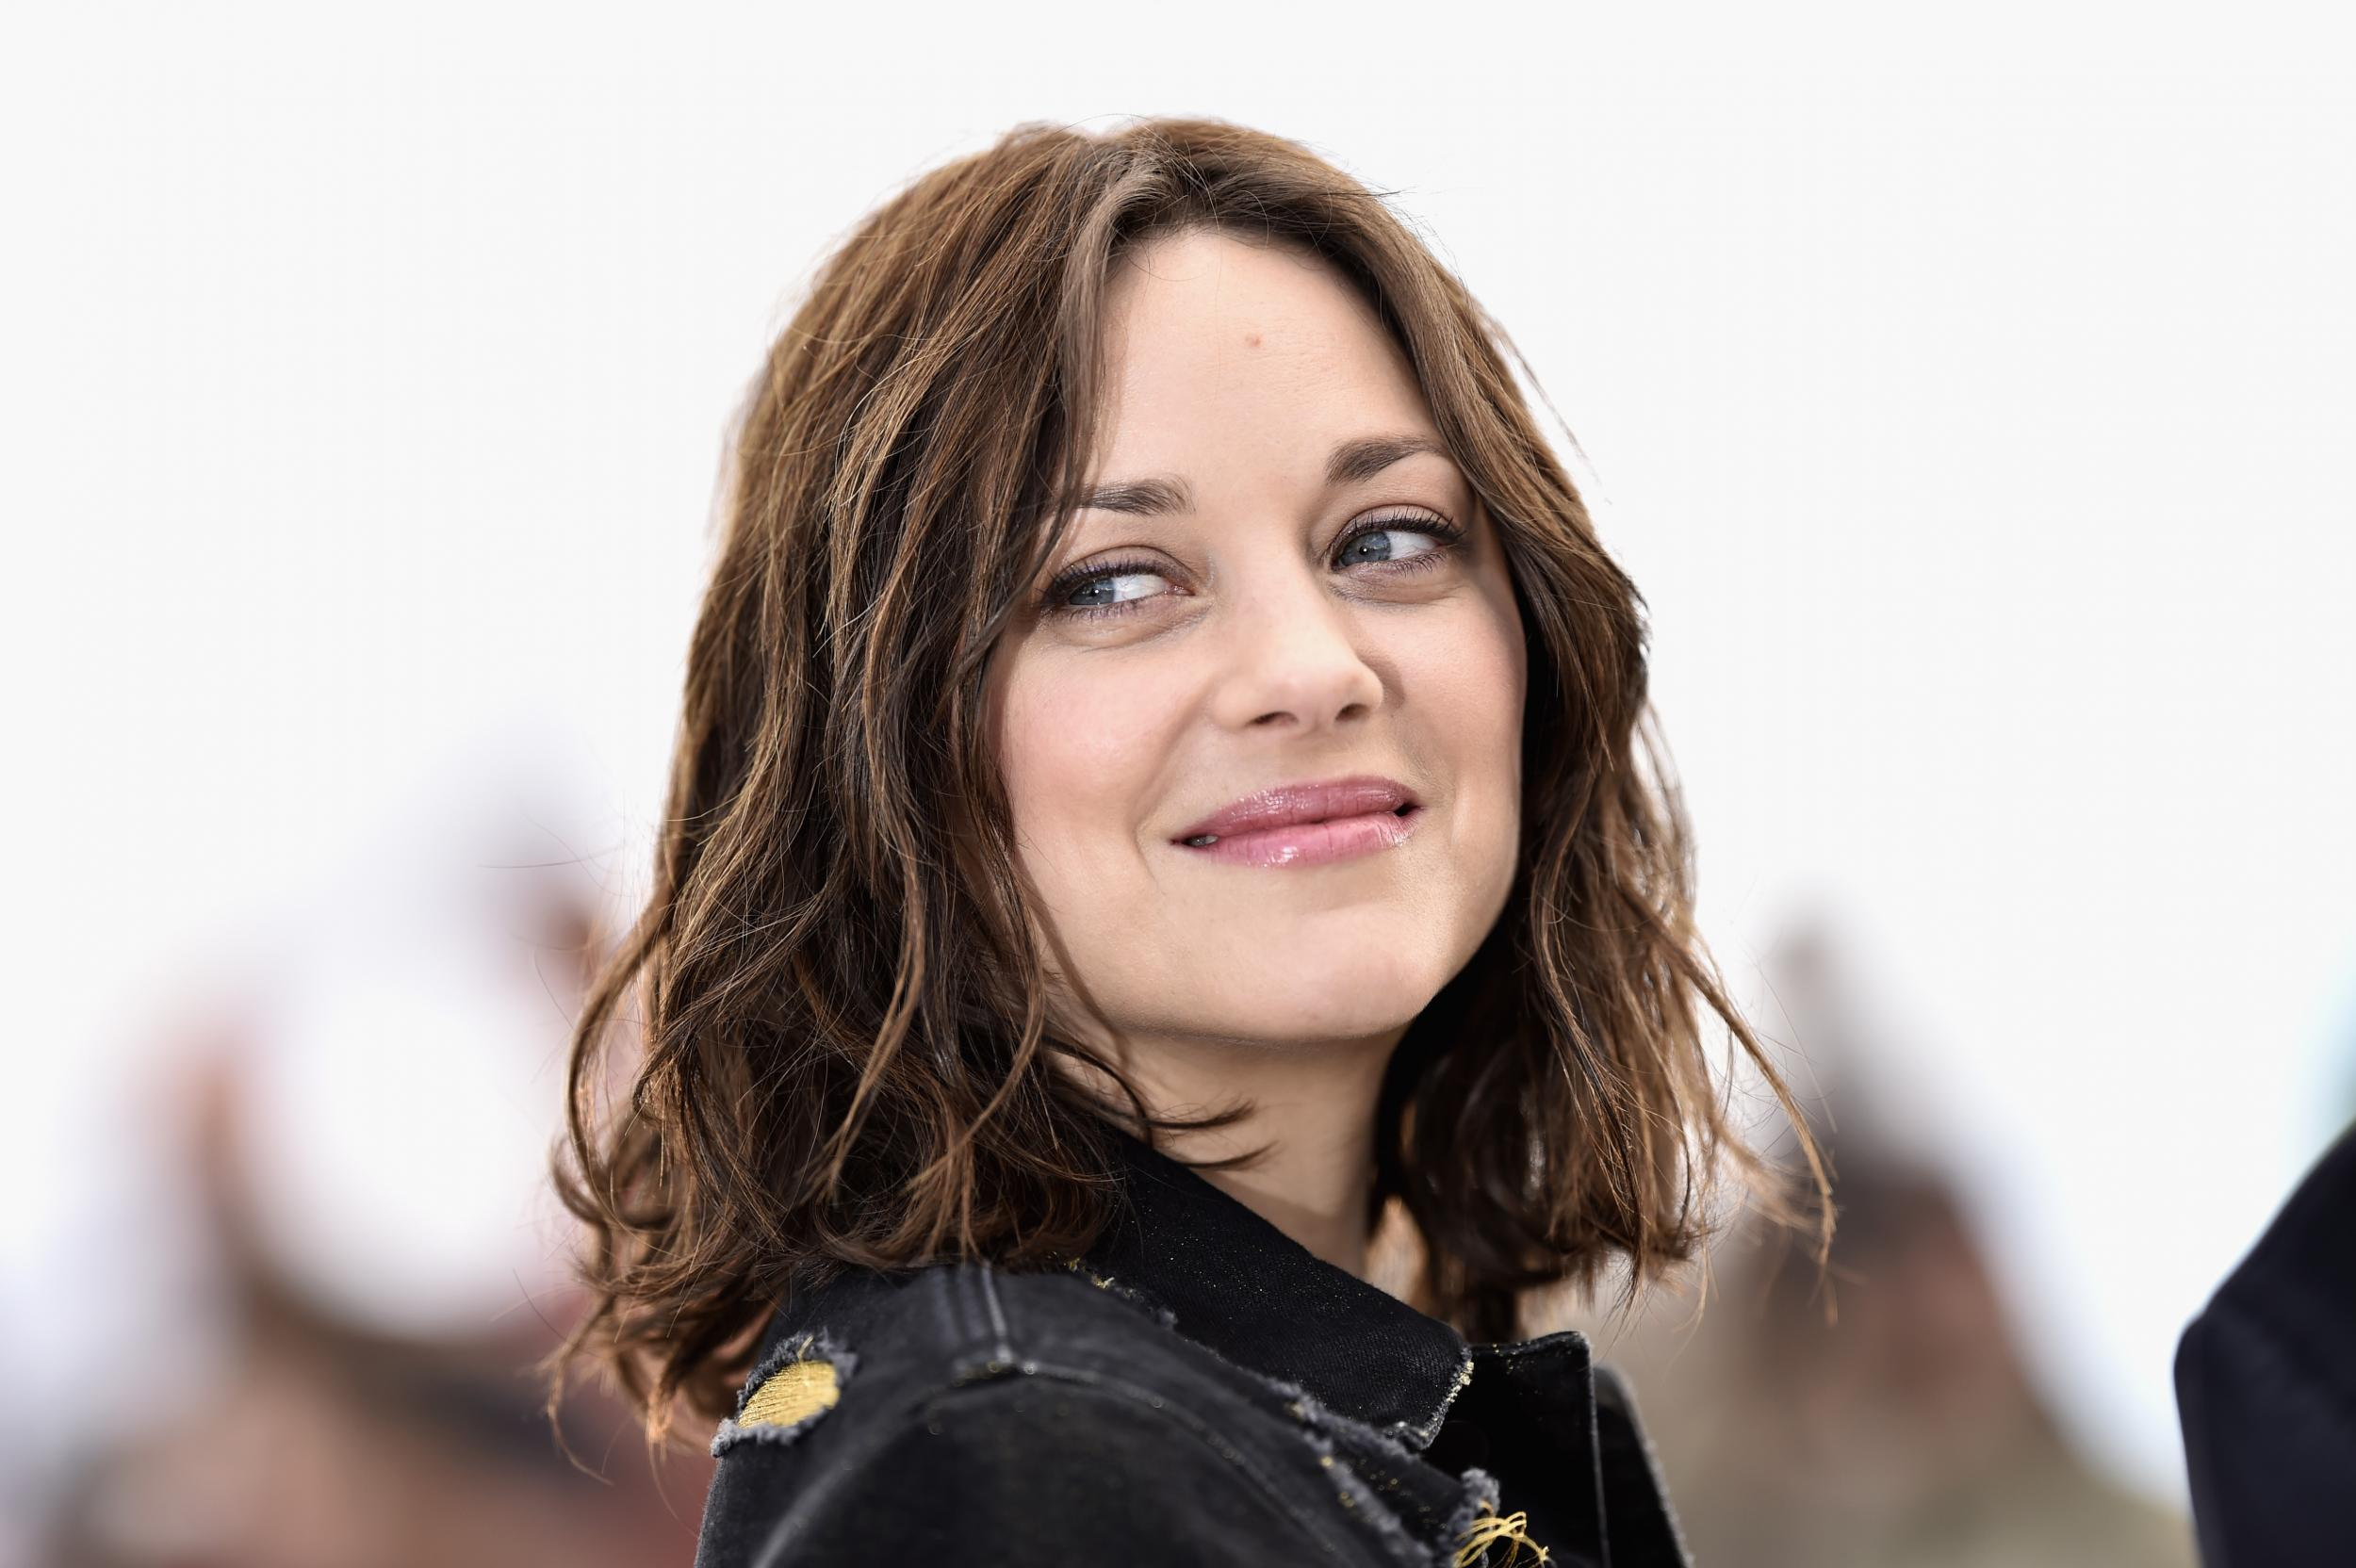 Marion Cotillard Who Is The French Actress Everyone Is Talking